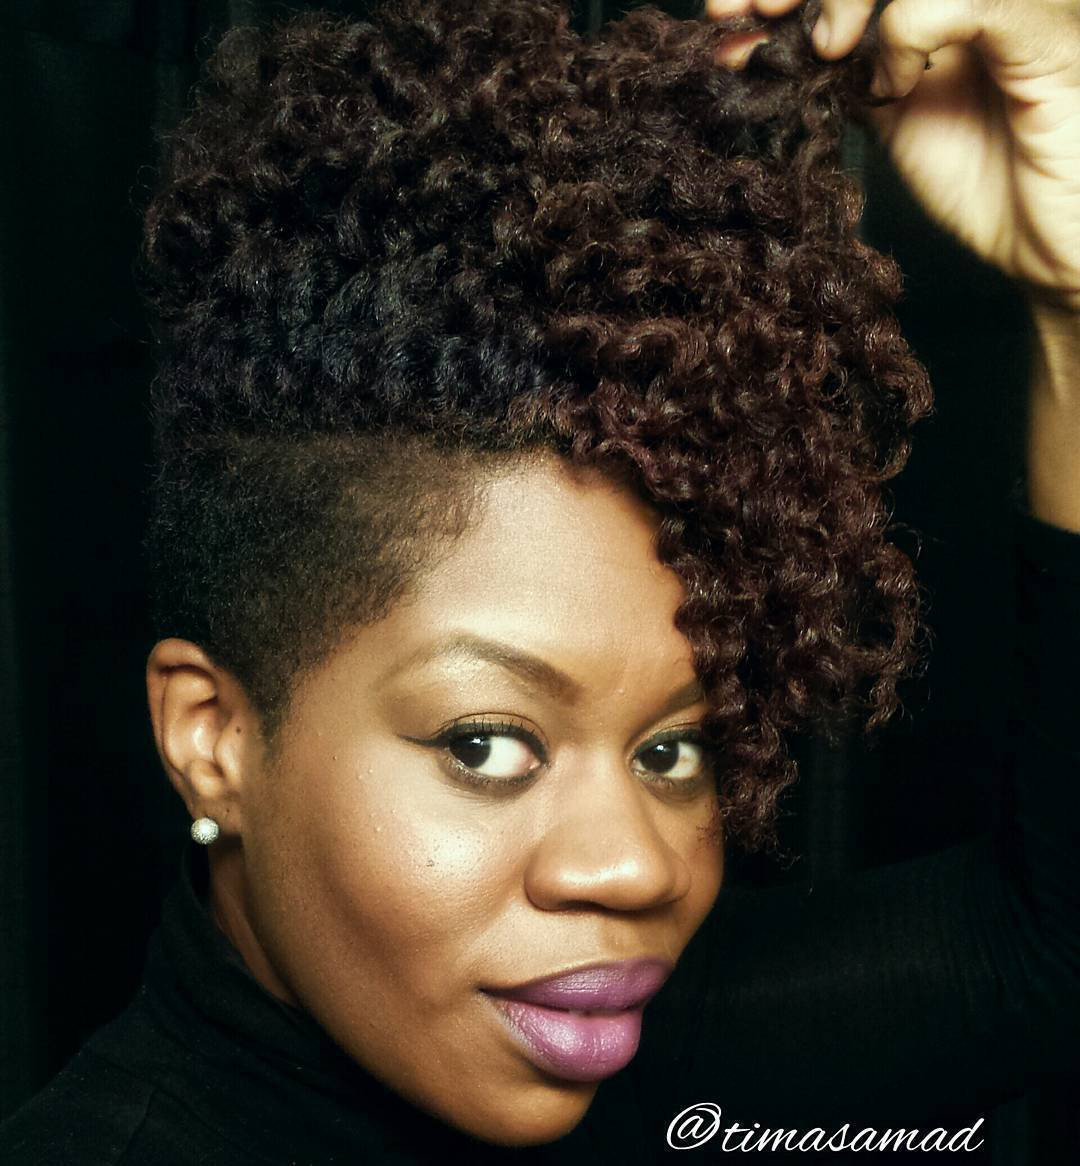 Best ideas about Tapered Natural Haircuts . Save or Pin 40 Cute Tapered Natural Hairstyles for Afro Hair Now.